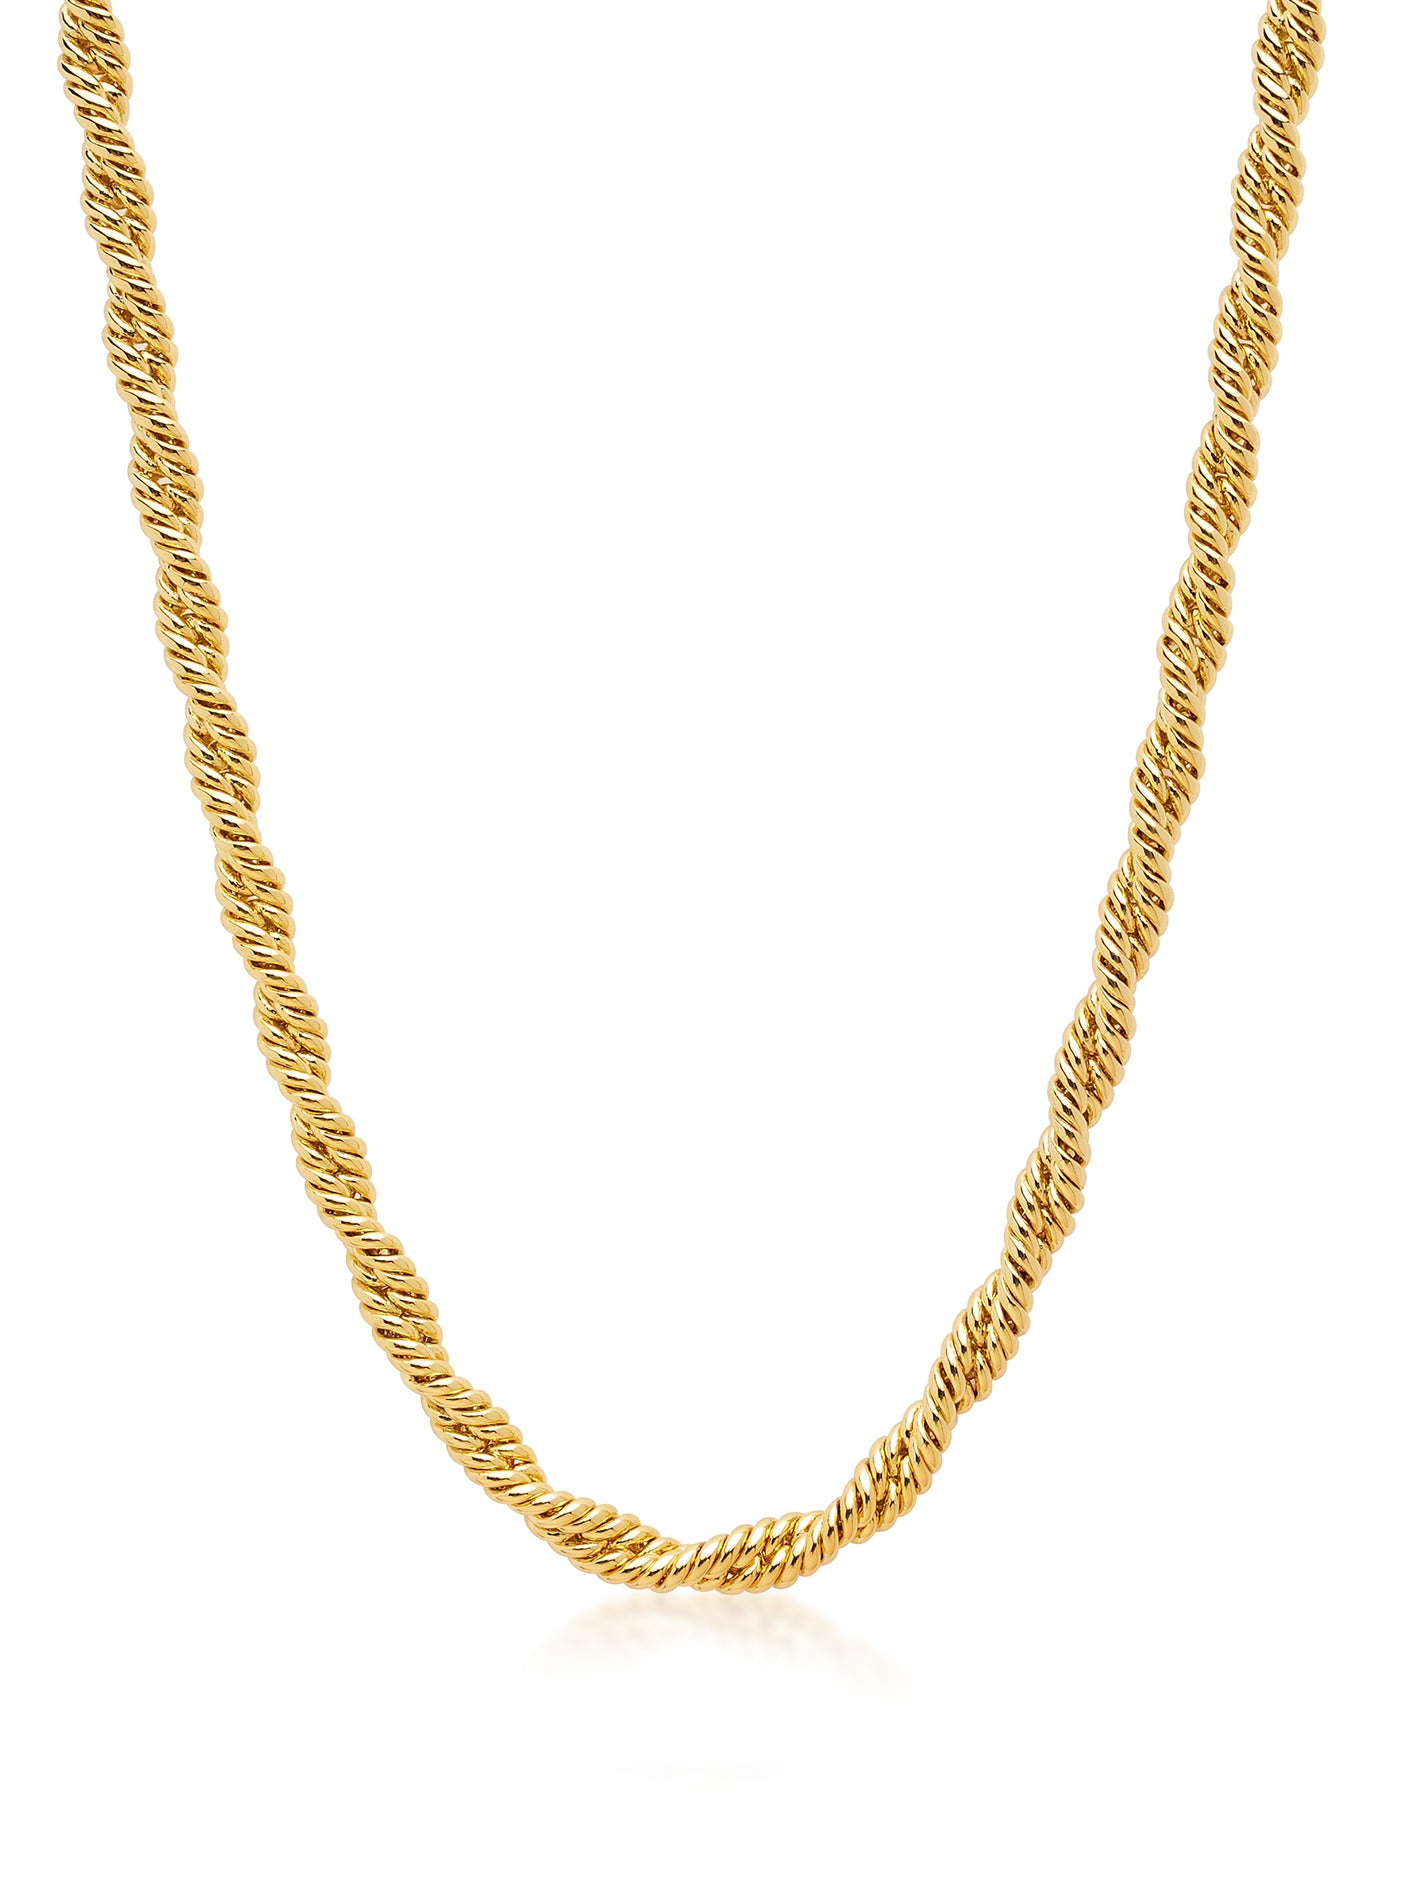 Chunky Gold Rope Necklace